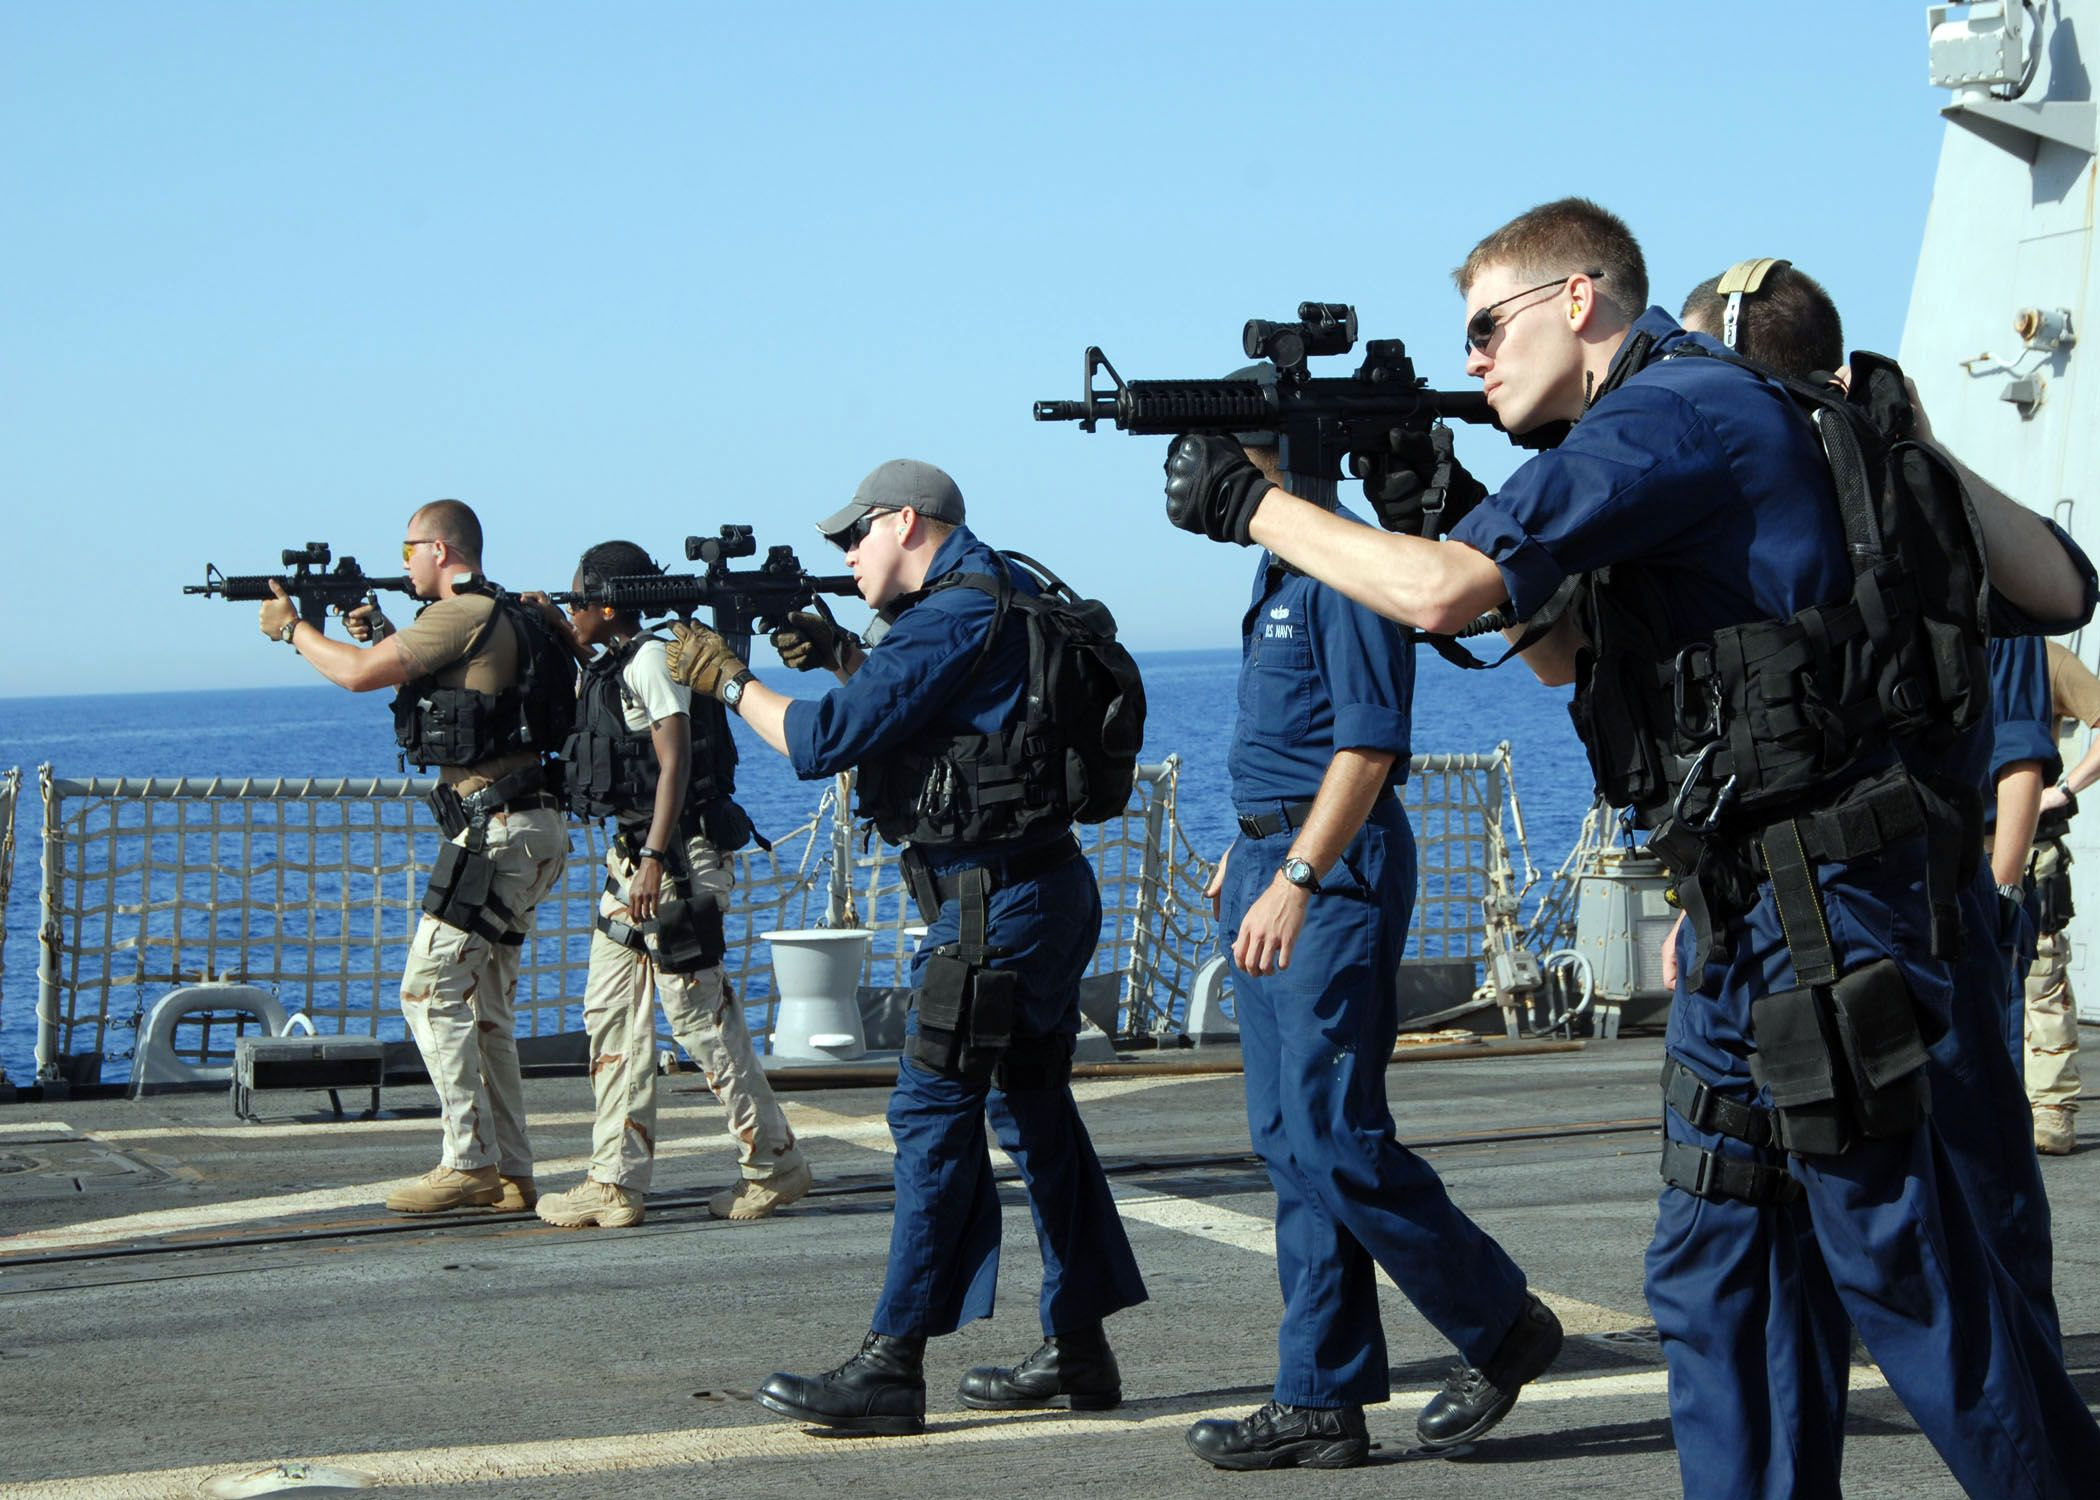 vbss requirements Google Search Military life, Battle, Usn